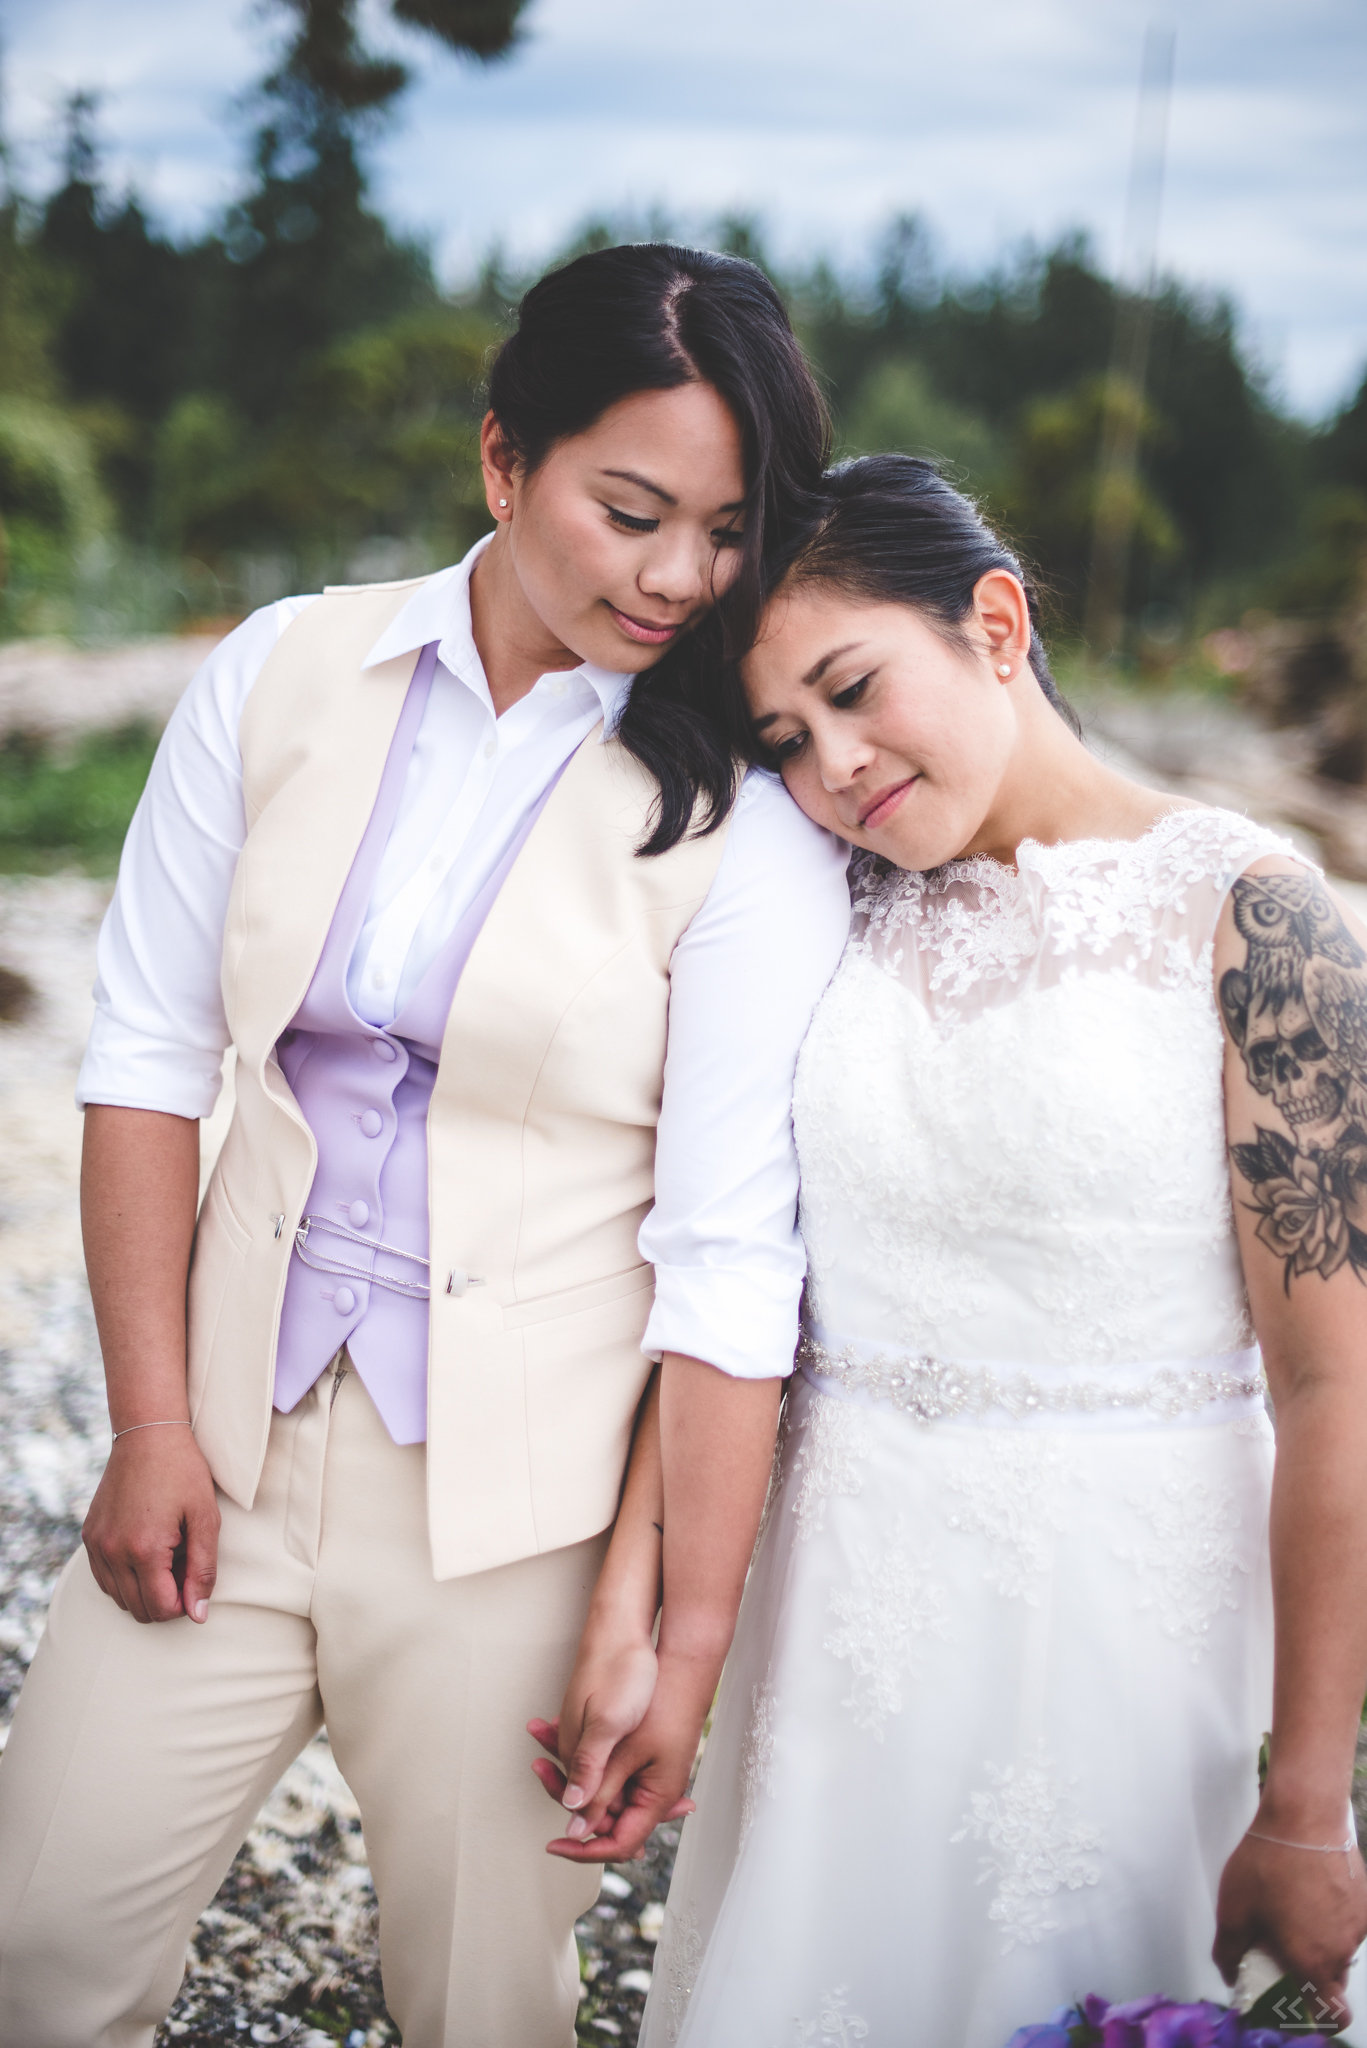 Poulsbo lgbt wedding